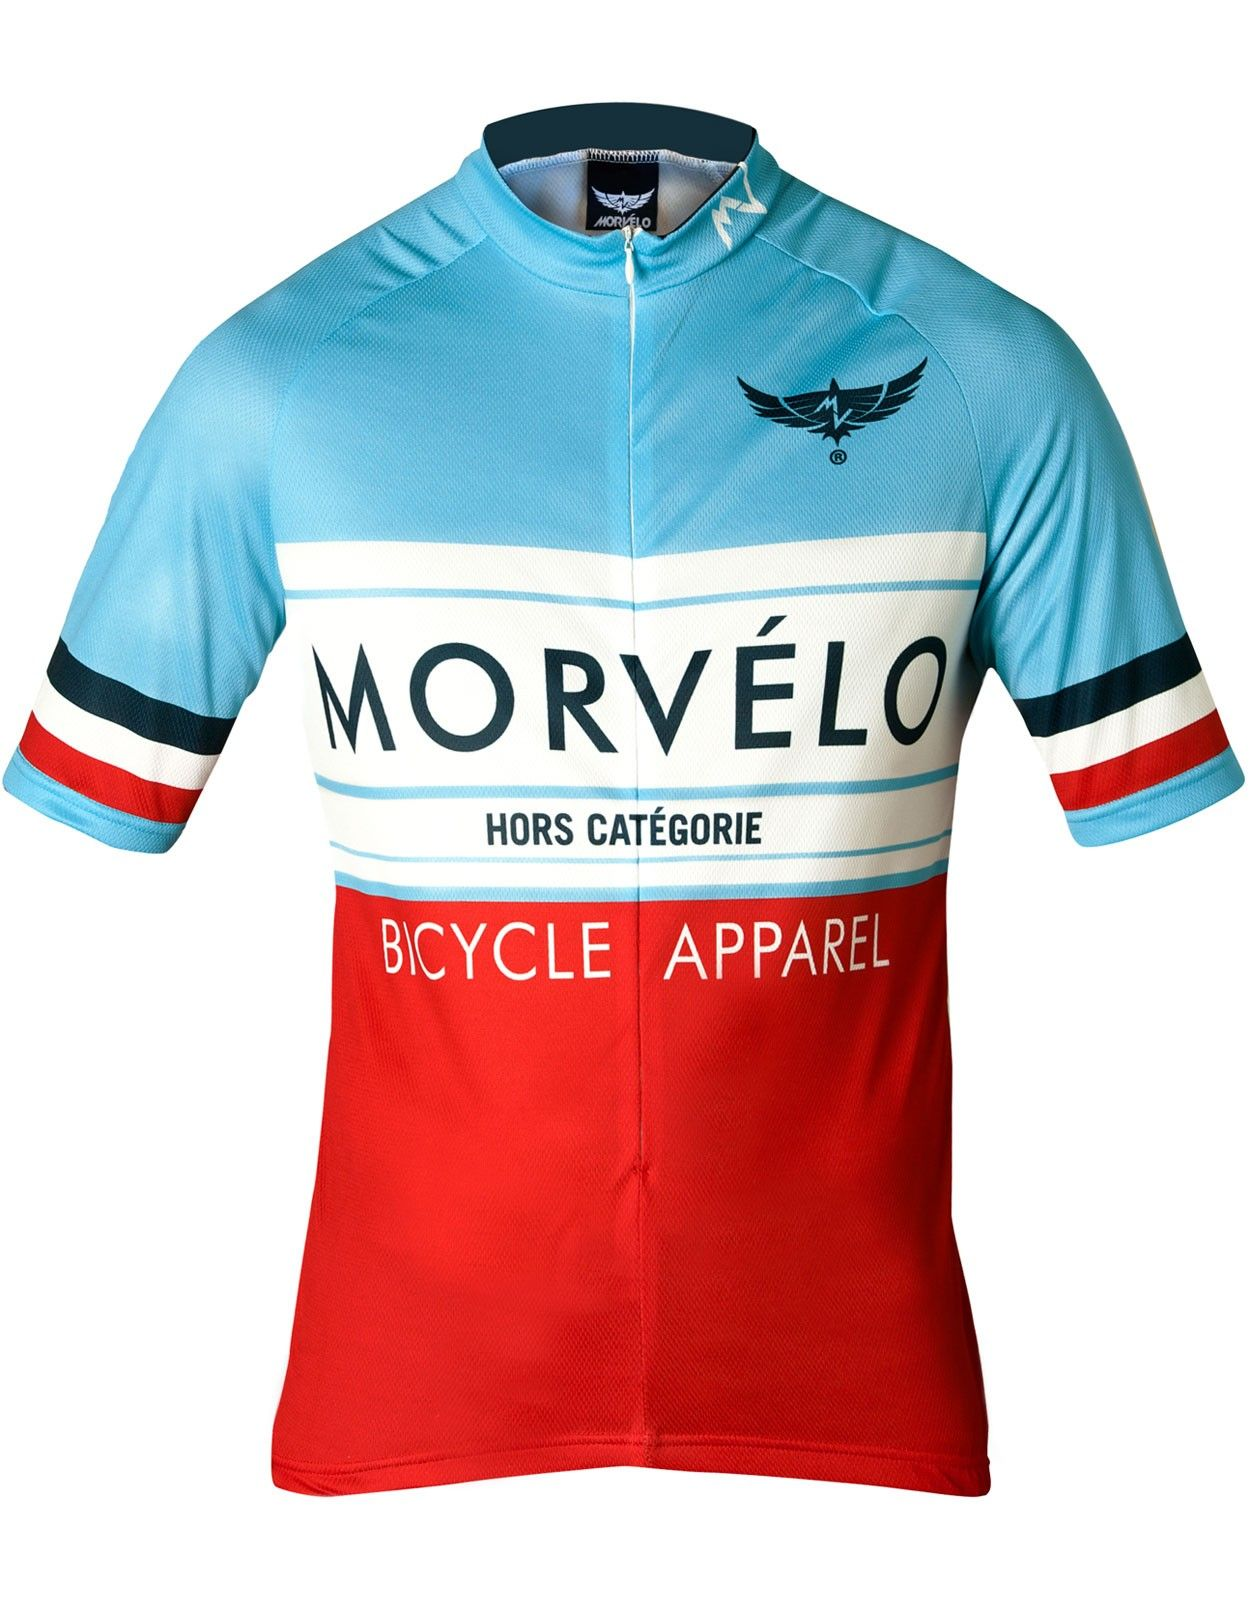 vintage cycling jerseys